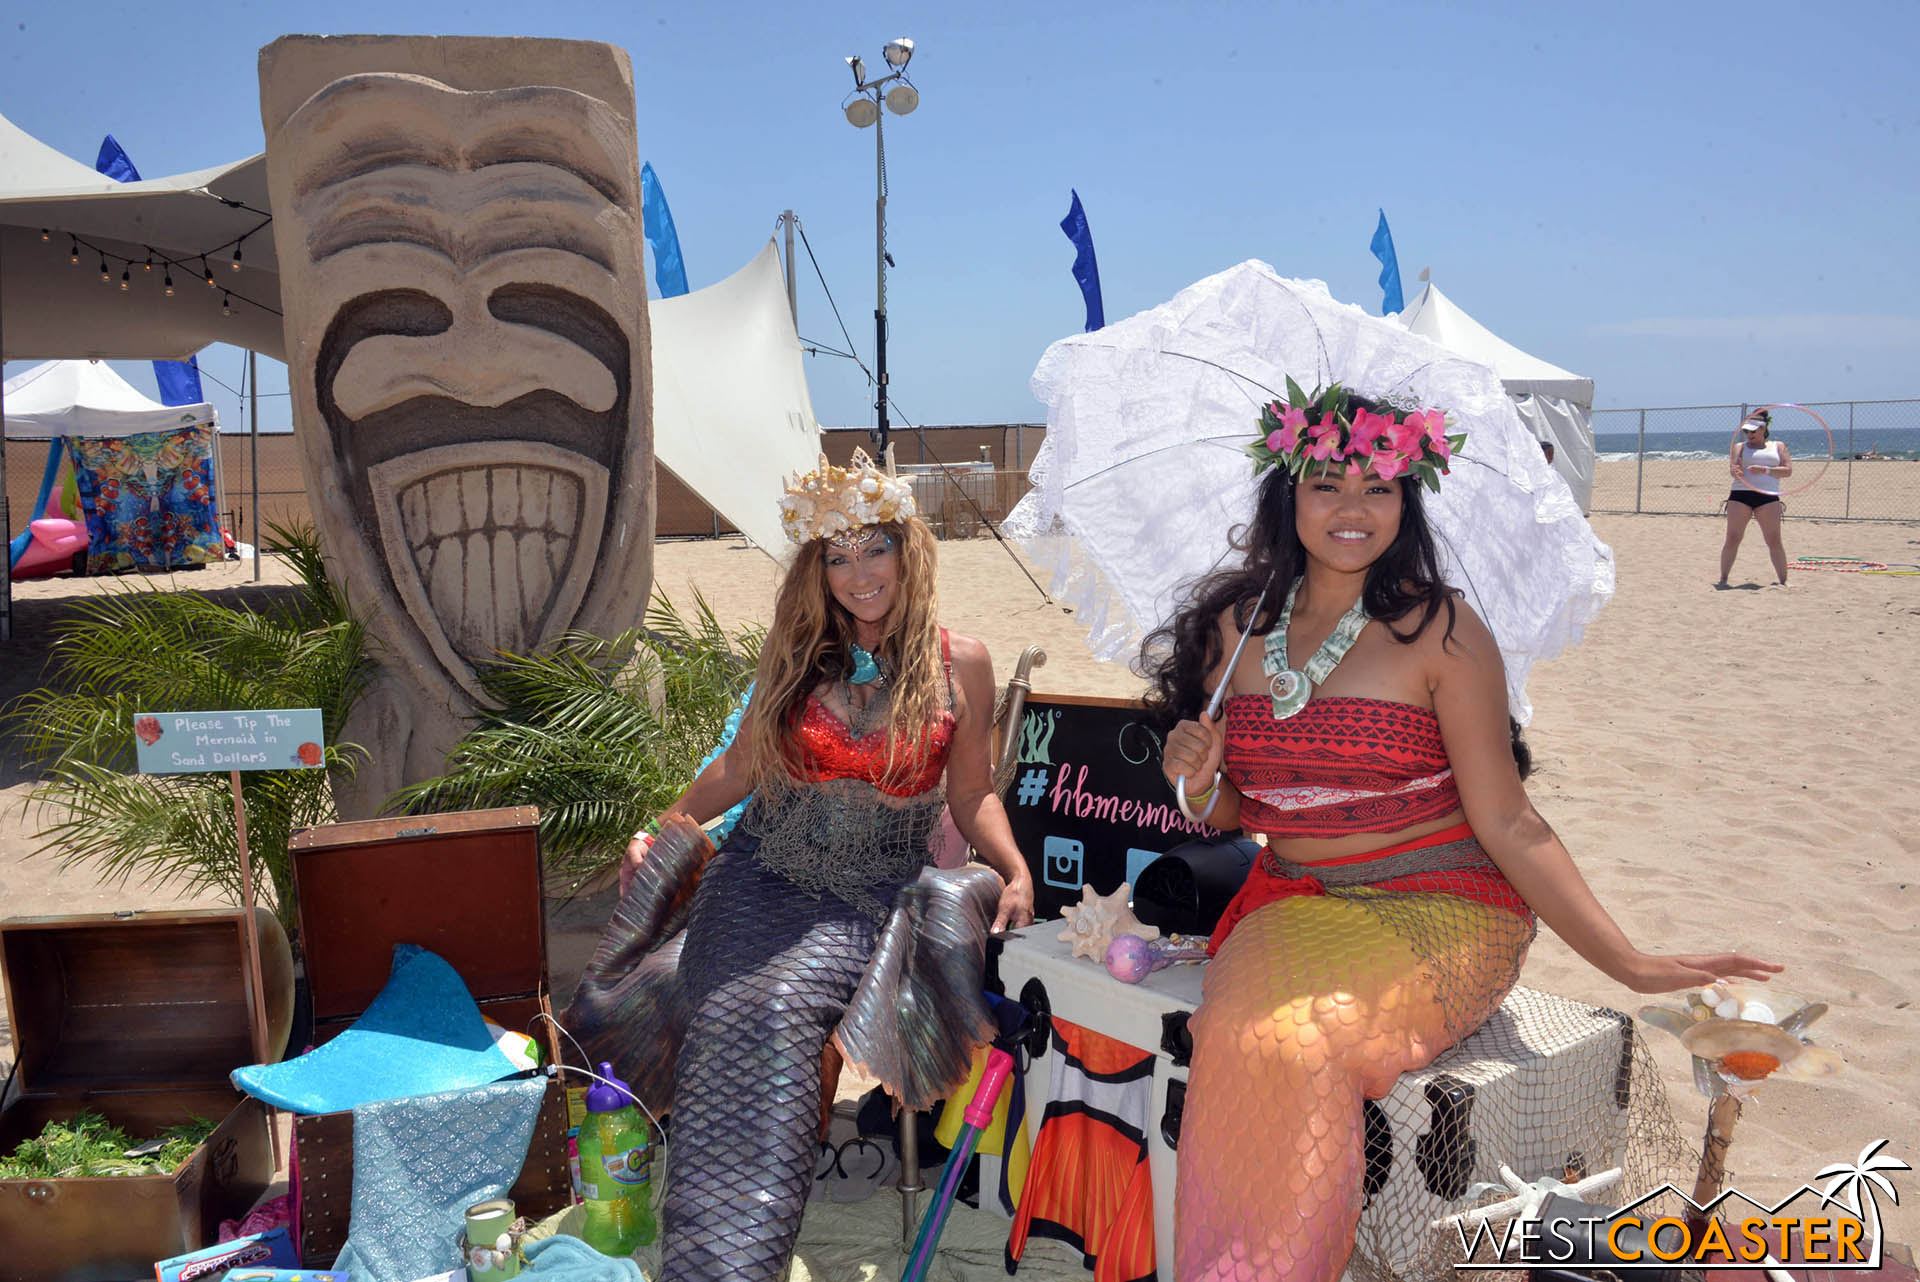 And since it was Huntington Beach, the tiki contingent was pretty strong.